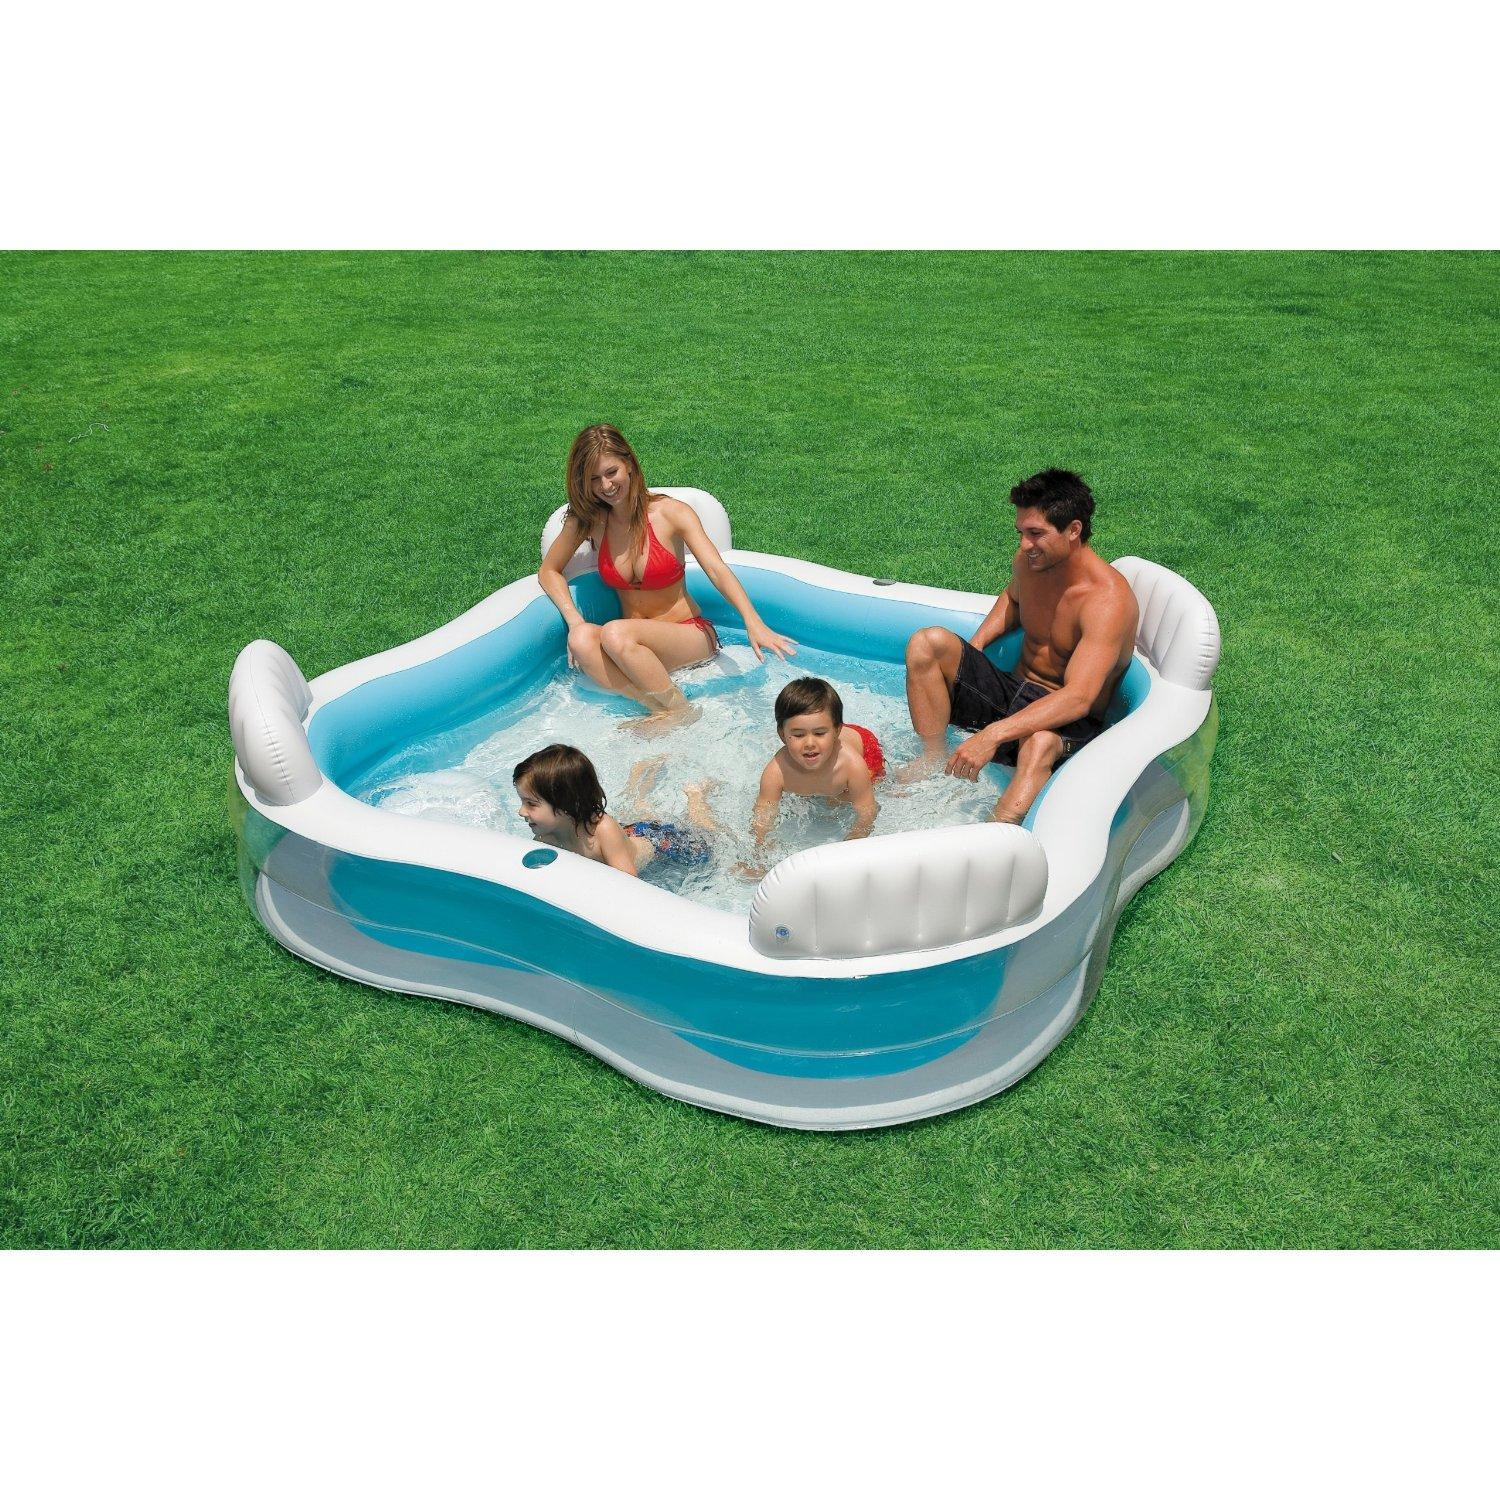 Intex inflatable swim centre family lounge large paddling swimming seat pool ebay Intex inflatable swimming pool